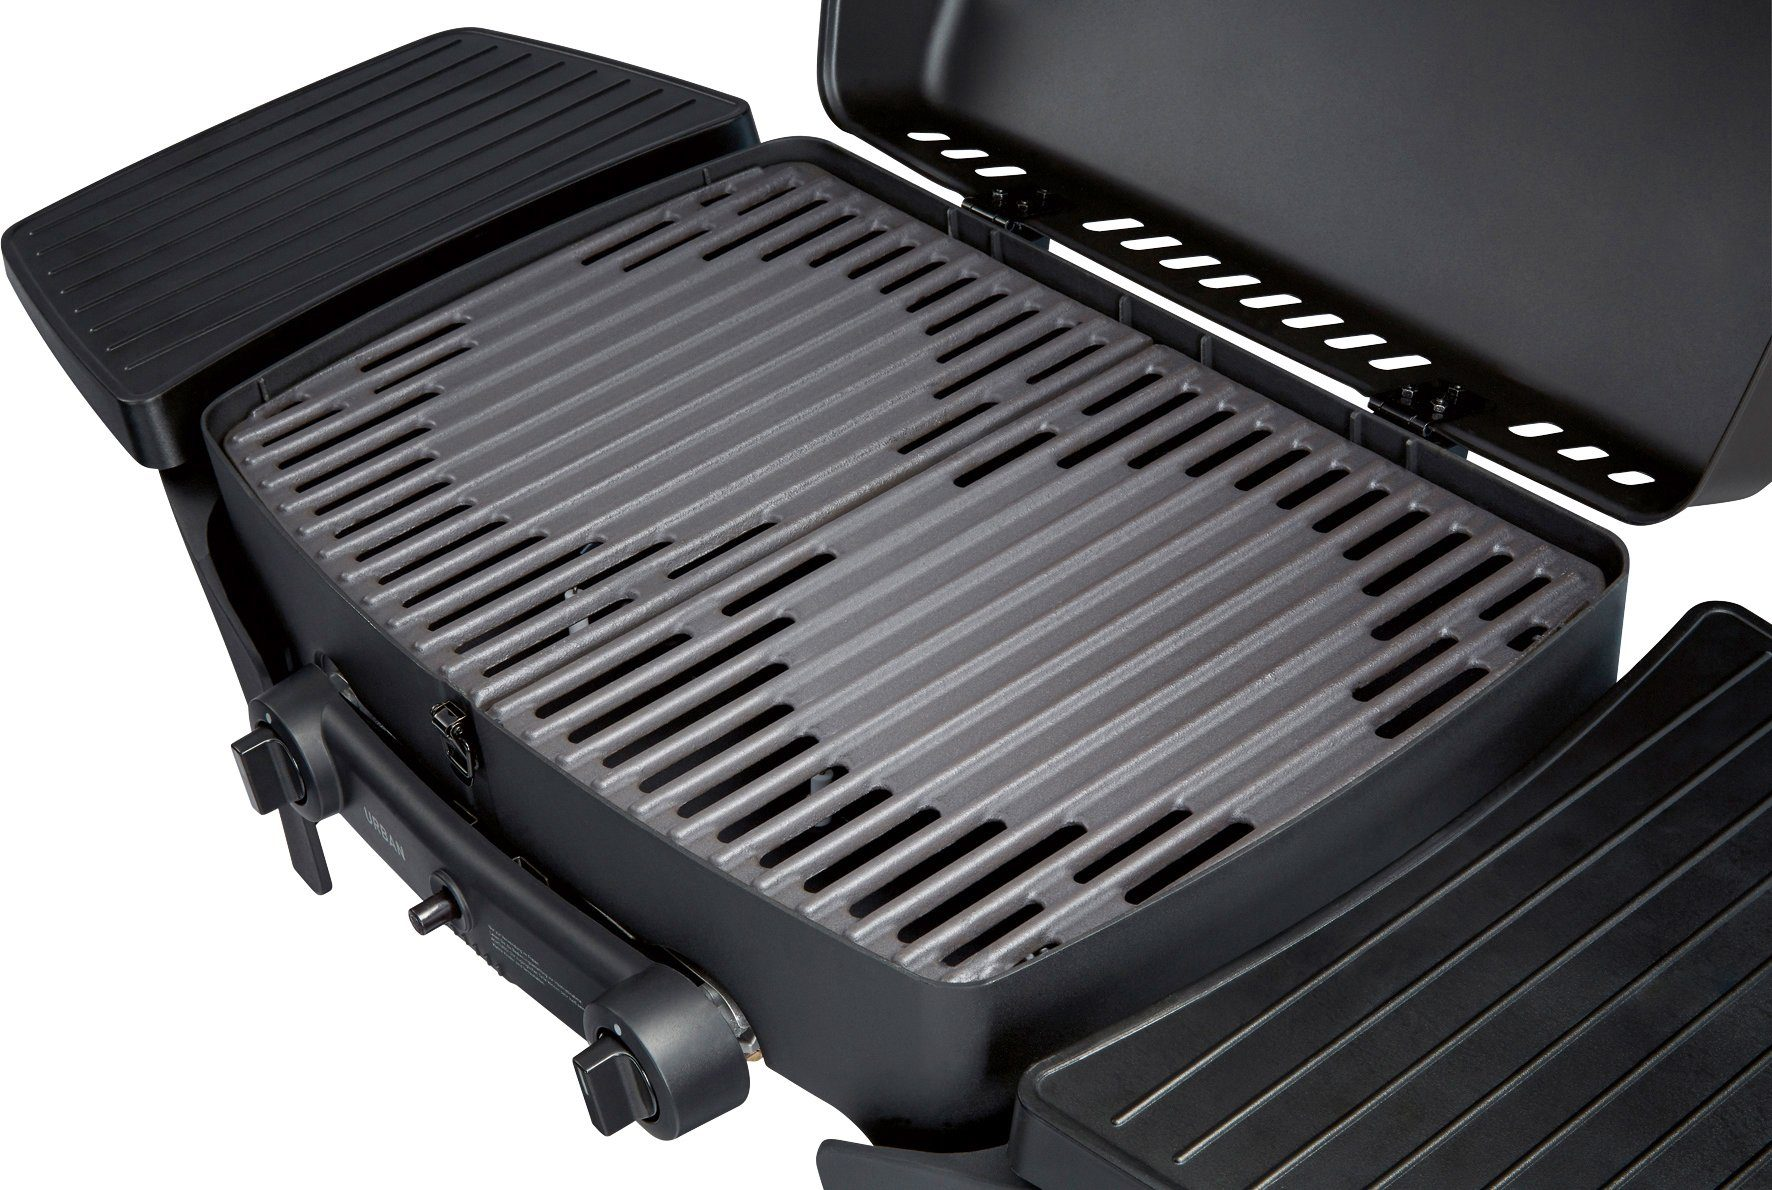 Enders Gasgrill Monroe Ersatzteile : Enders bbq gasgrill monroe sik turbo gas grill steak